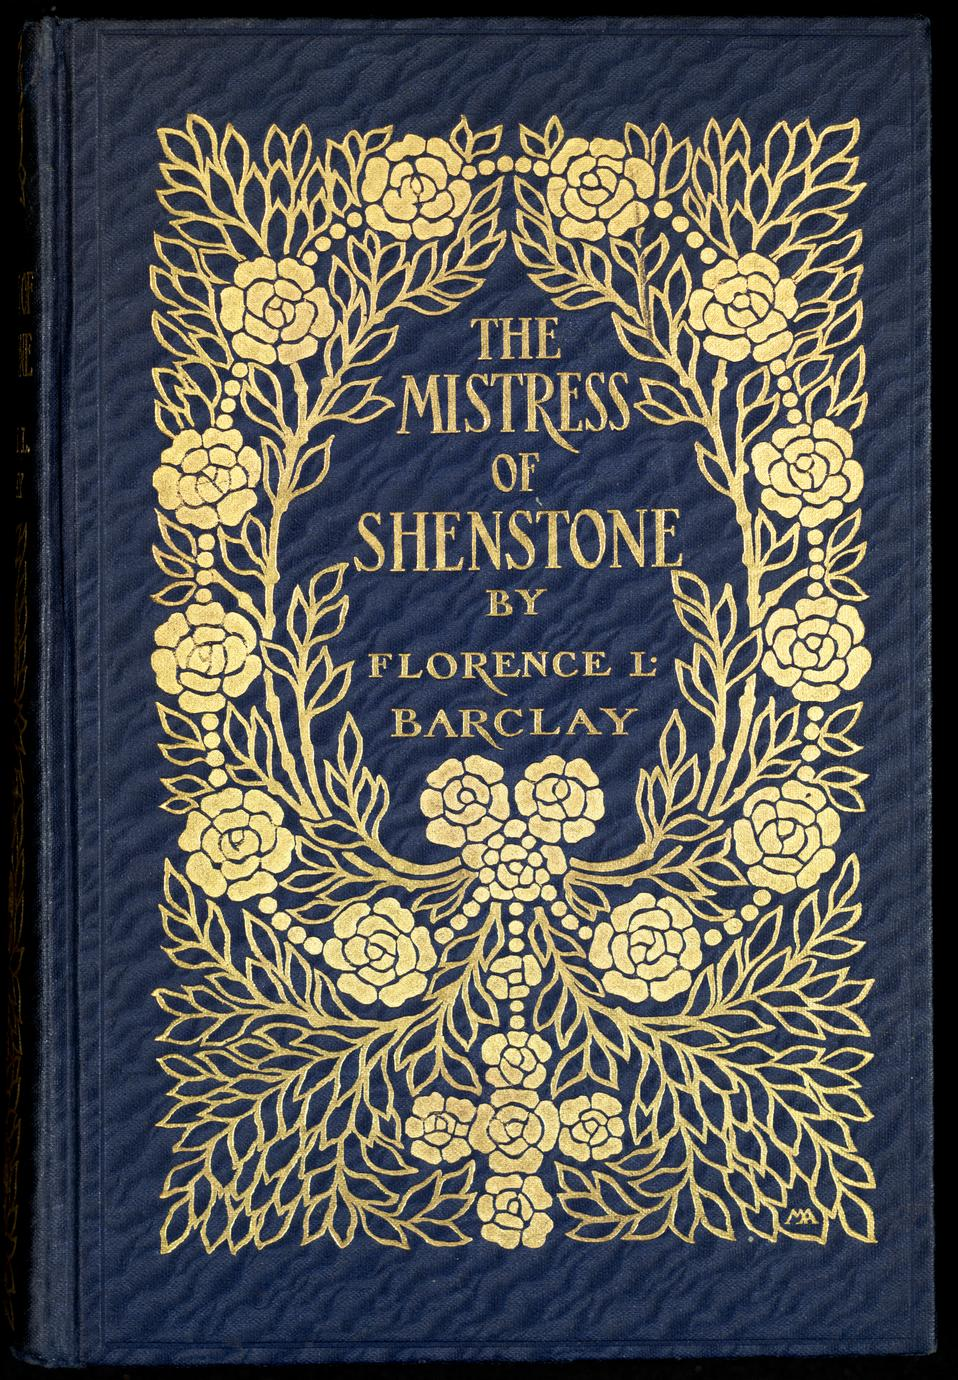 The mistress of Shenstone (1 of 3)